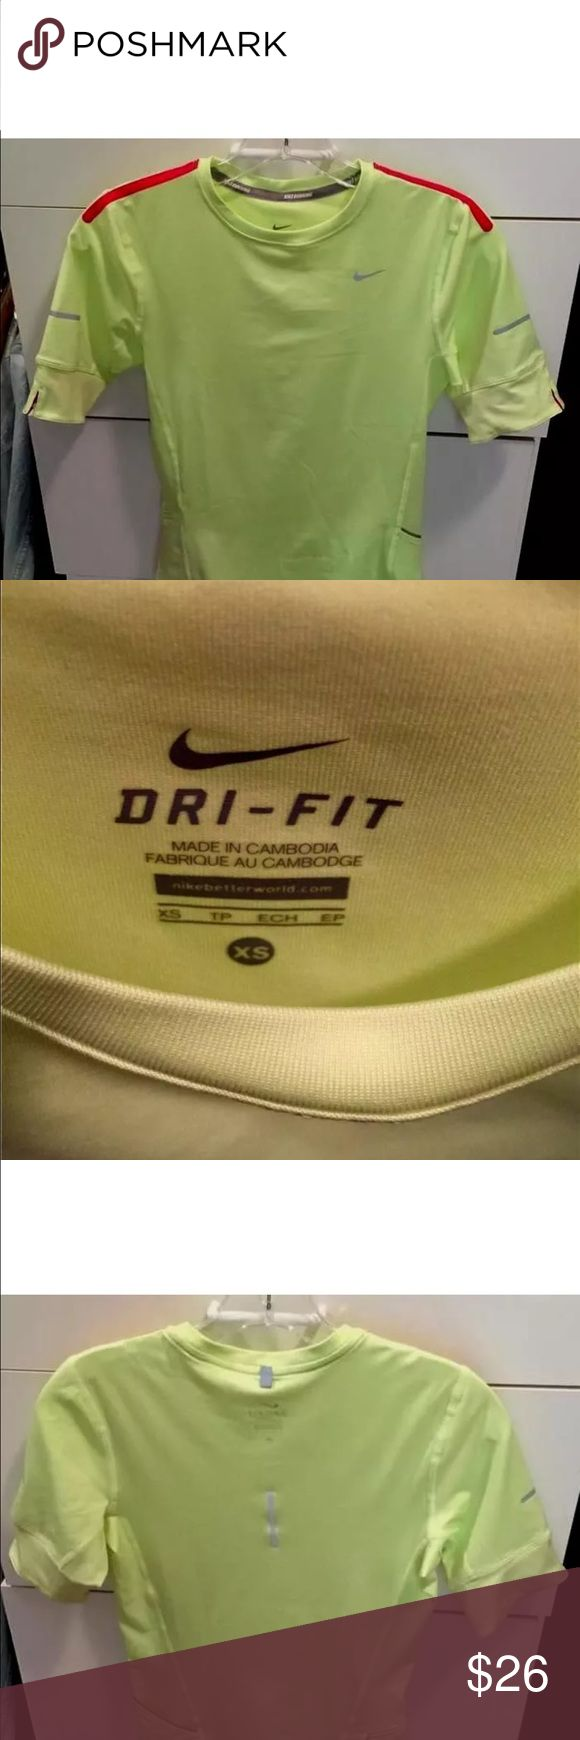 NIKE DRI-FIT ACID YELLOW SHORT SLEEVE TOP SIZE XS NIKE DRI-FIT ACID YELLOW SHORT SLEEVE TOP SIZE XS  GREAT SLEEVE DETAIL WITH THE RED Nike Tops Tees - Short Sleeve